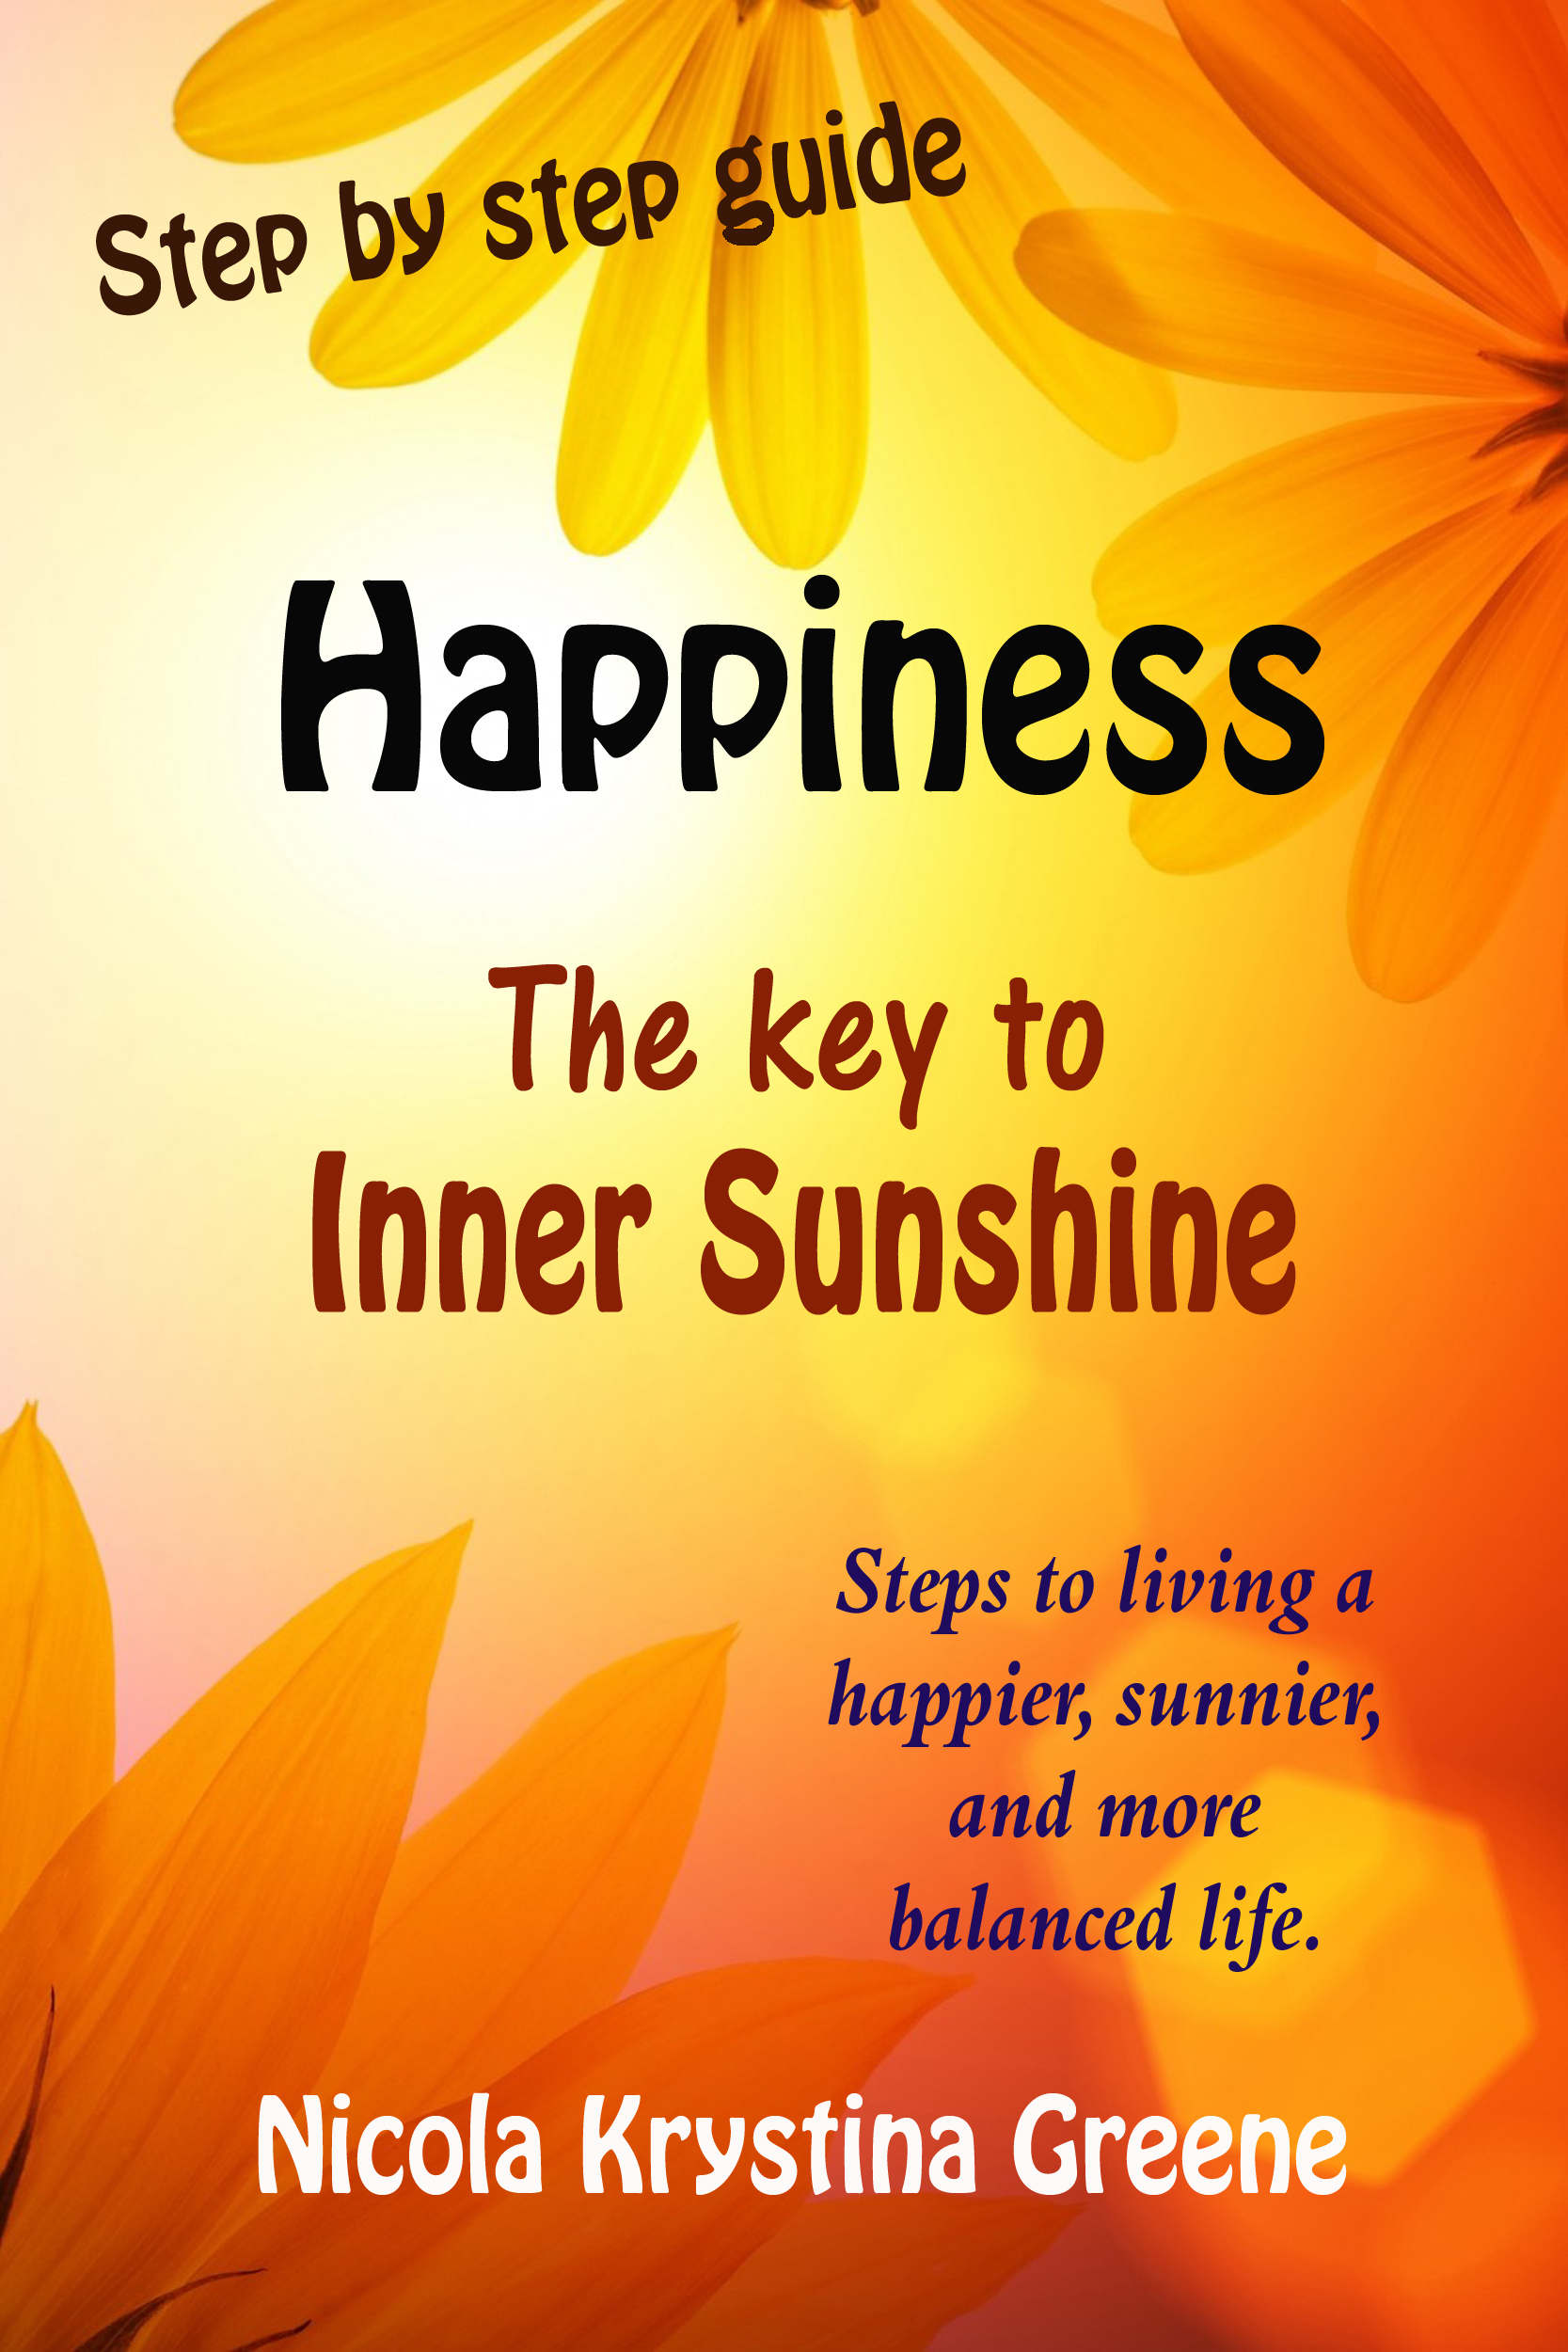 happiness the key to life essay Happiness is the key to life essay: ucsd personal statement help april 9, 2018 uncategorized 0 @enchantedpayne faire un essay en s'appuyant sur paroles de chanson.